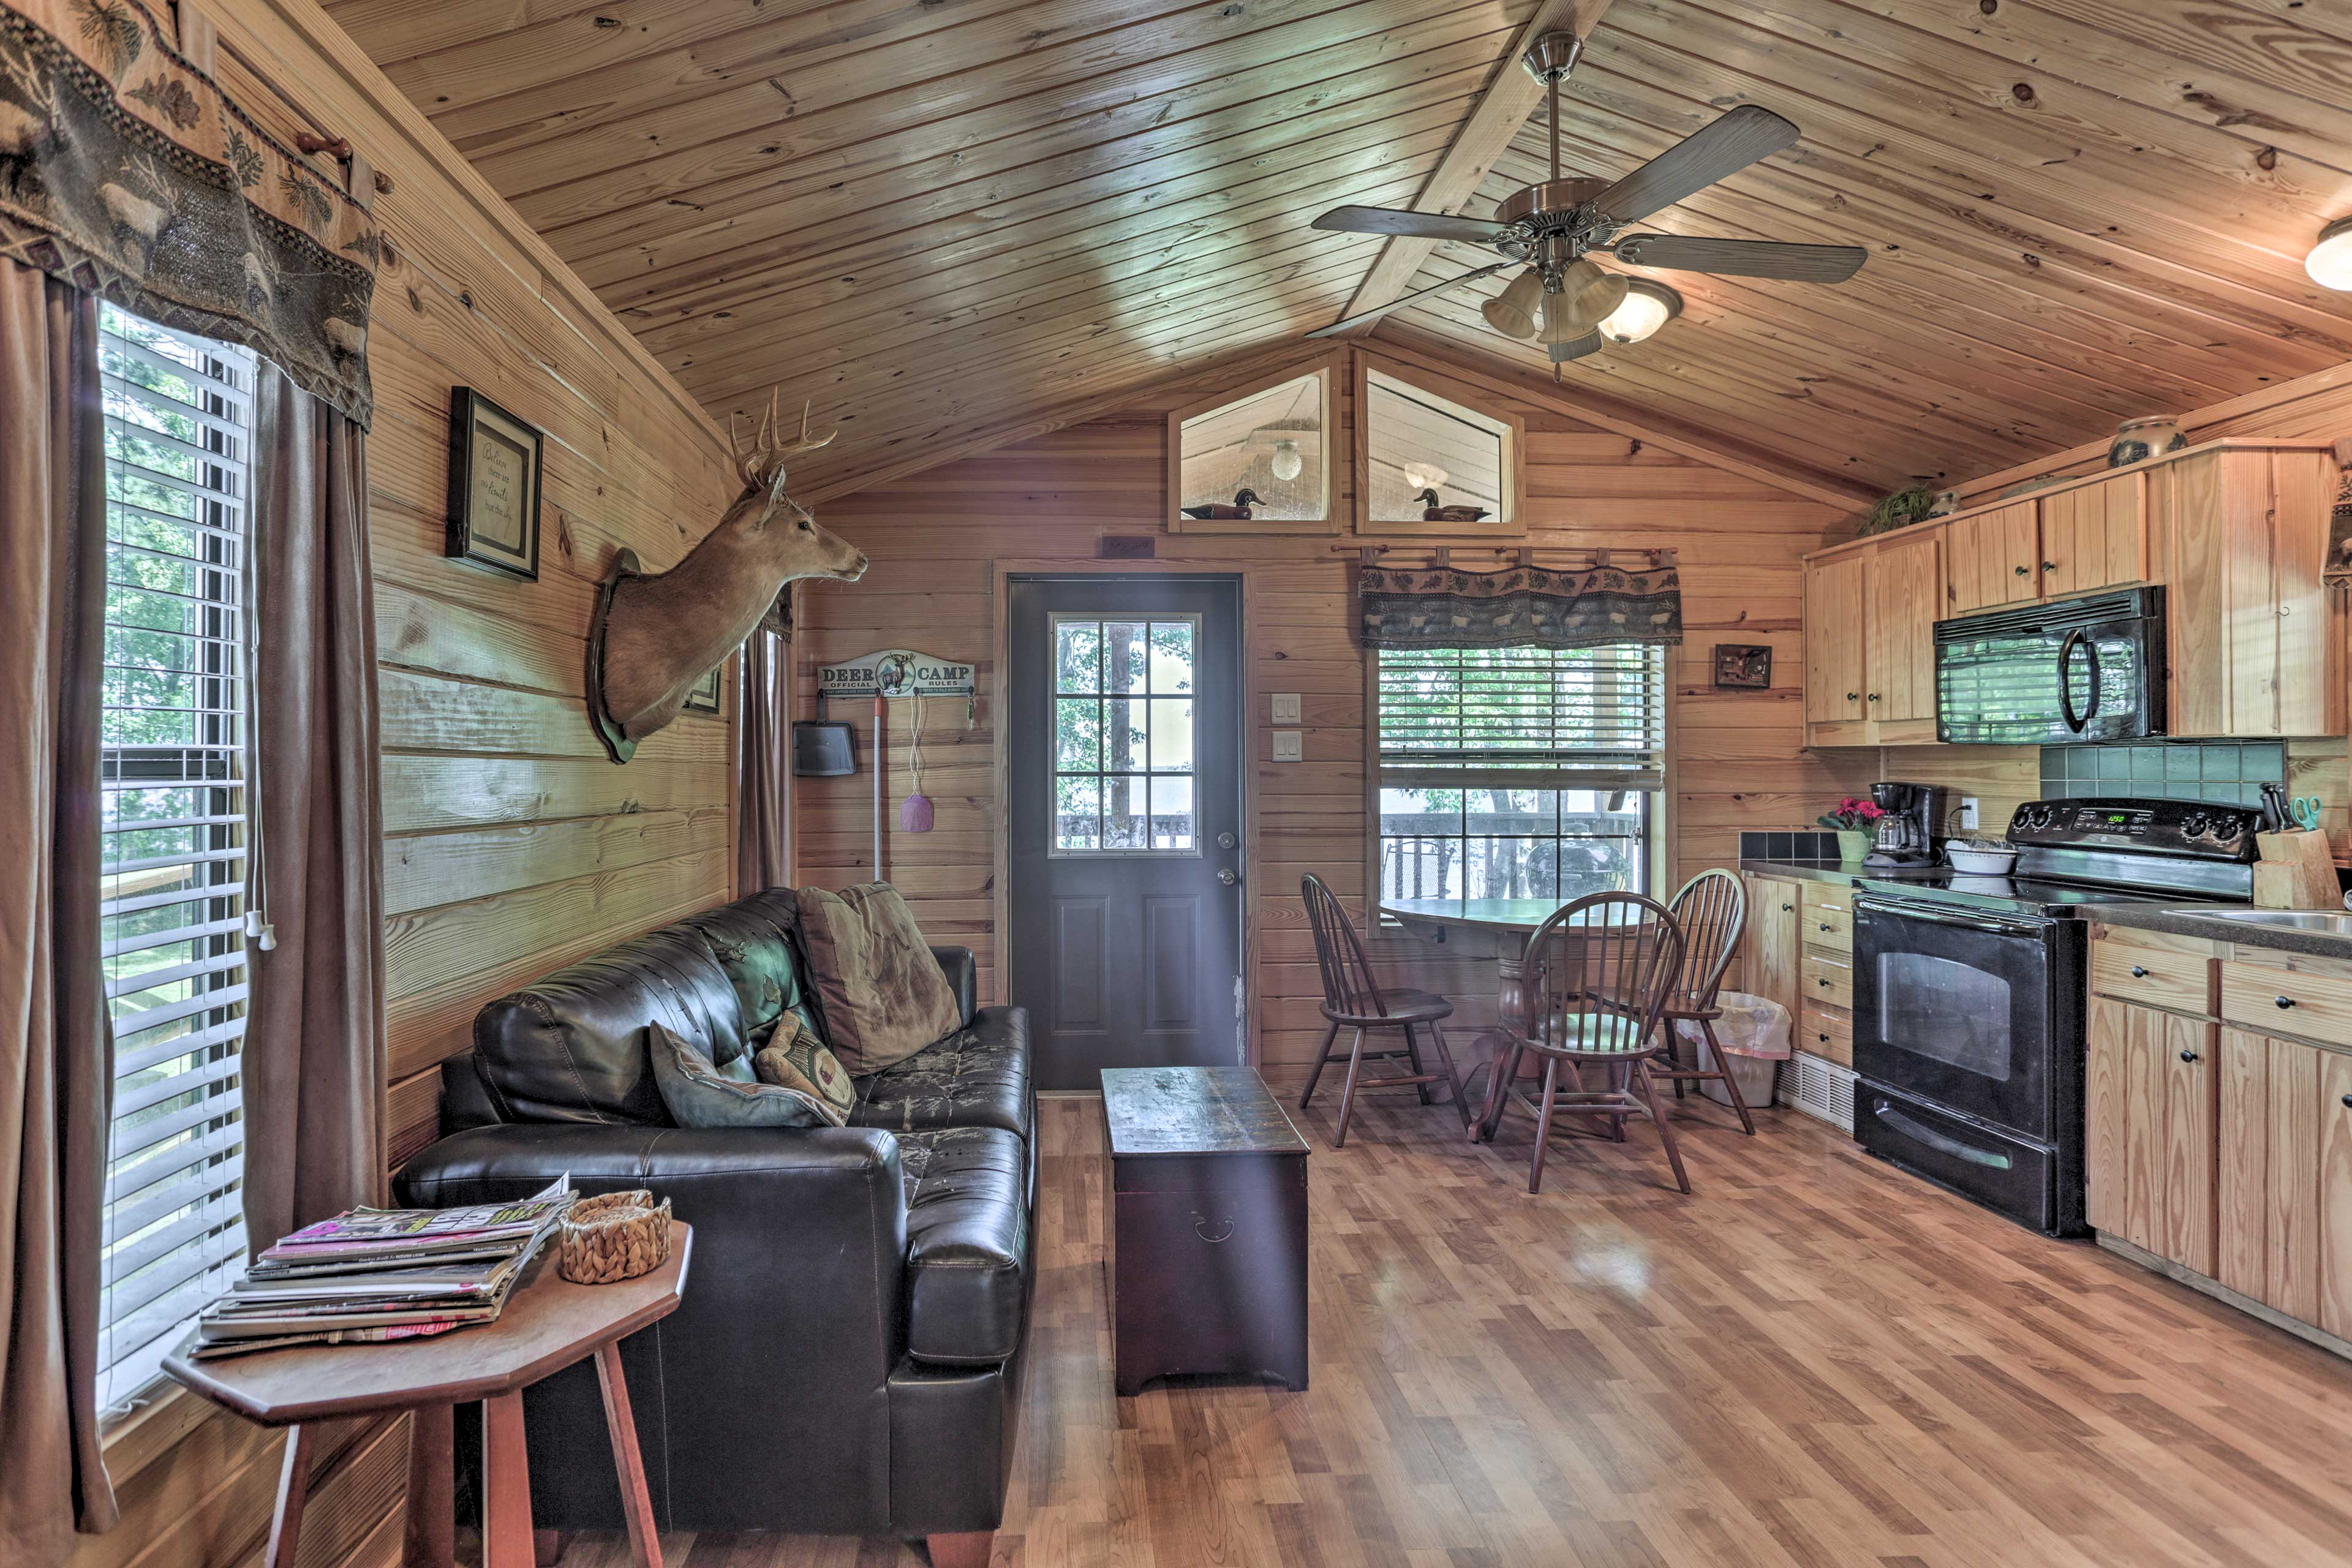 The pine-paneled walls echo the natural beauty found outside.